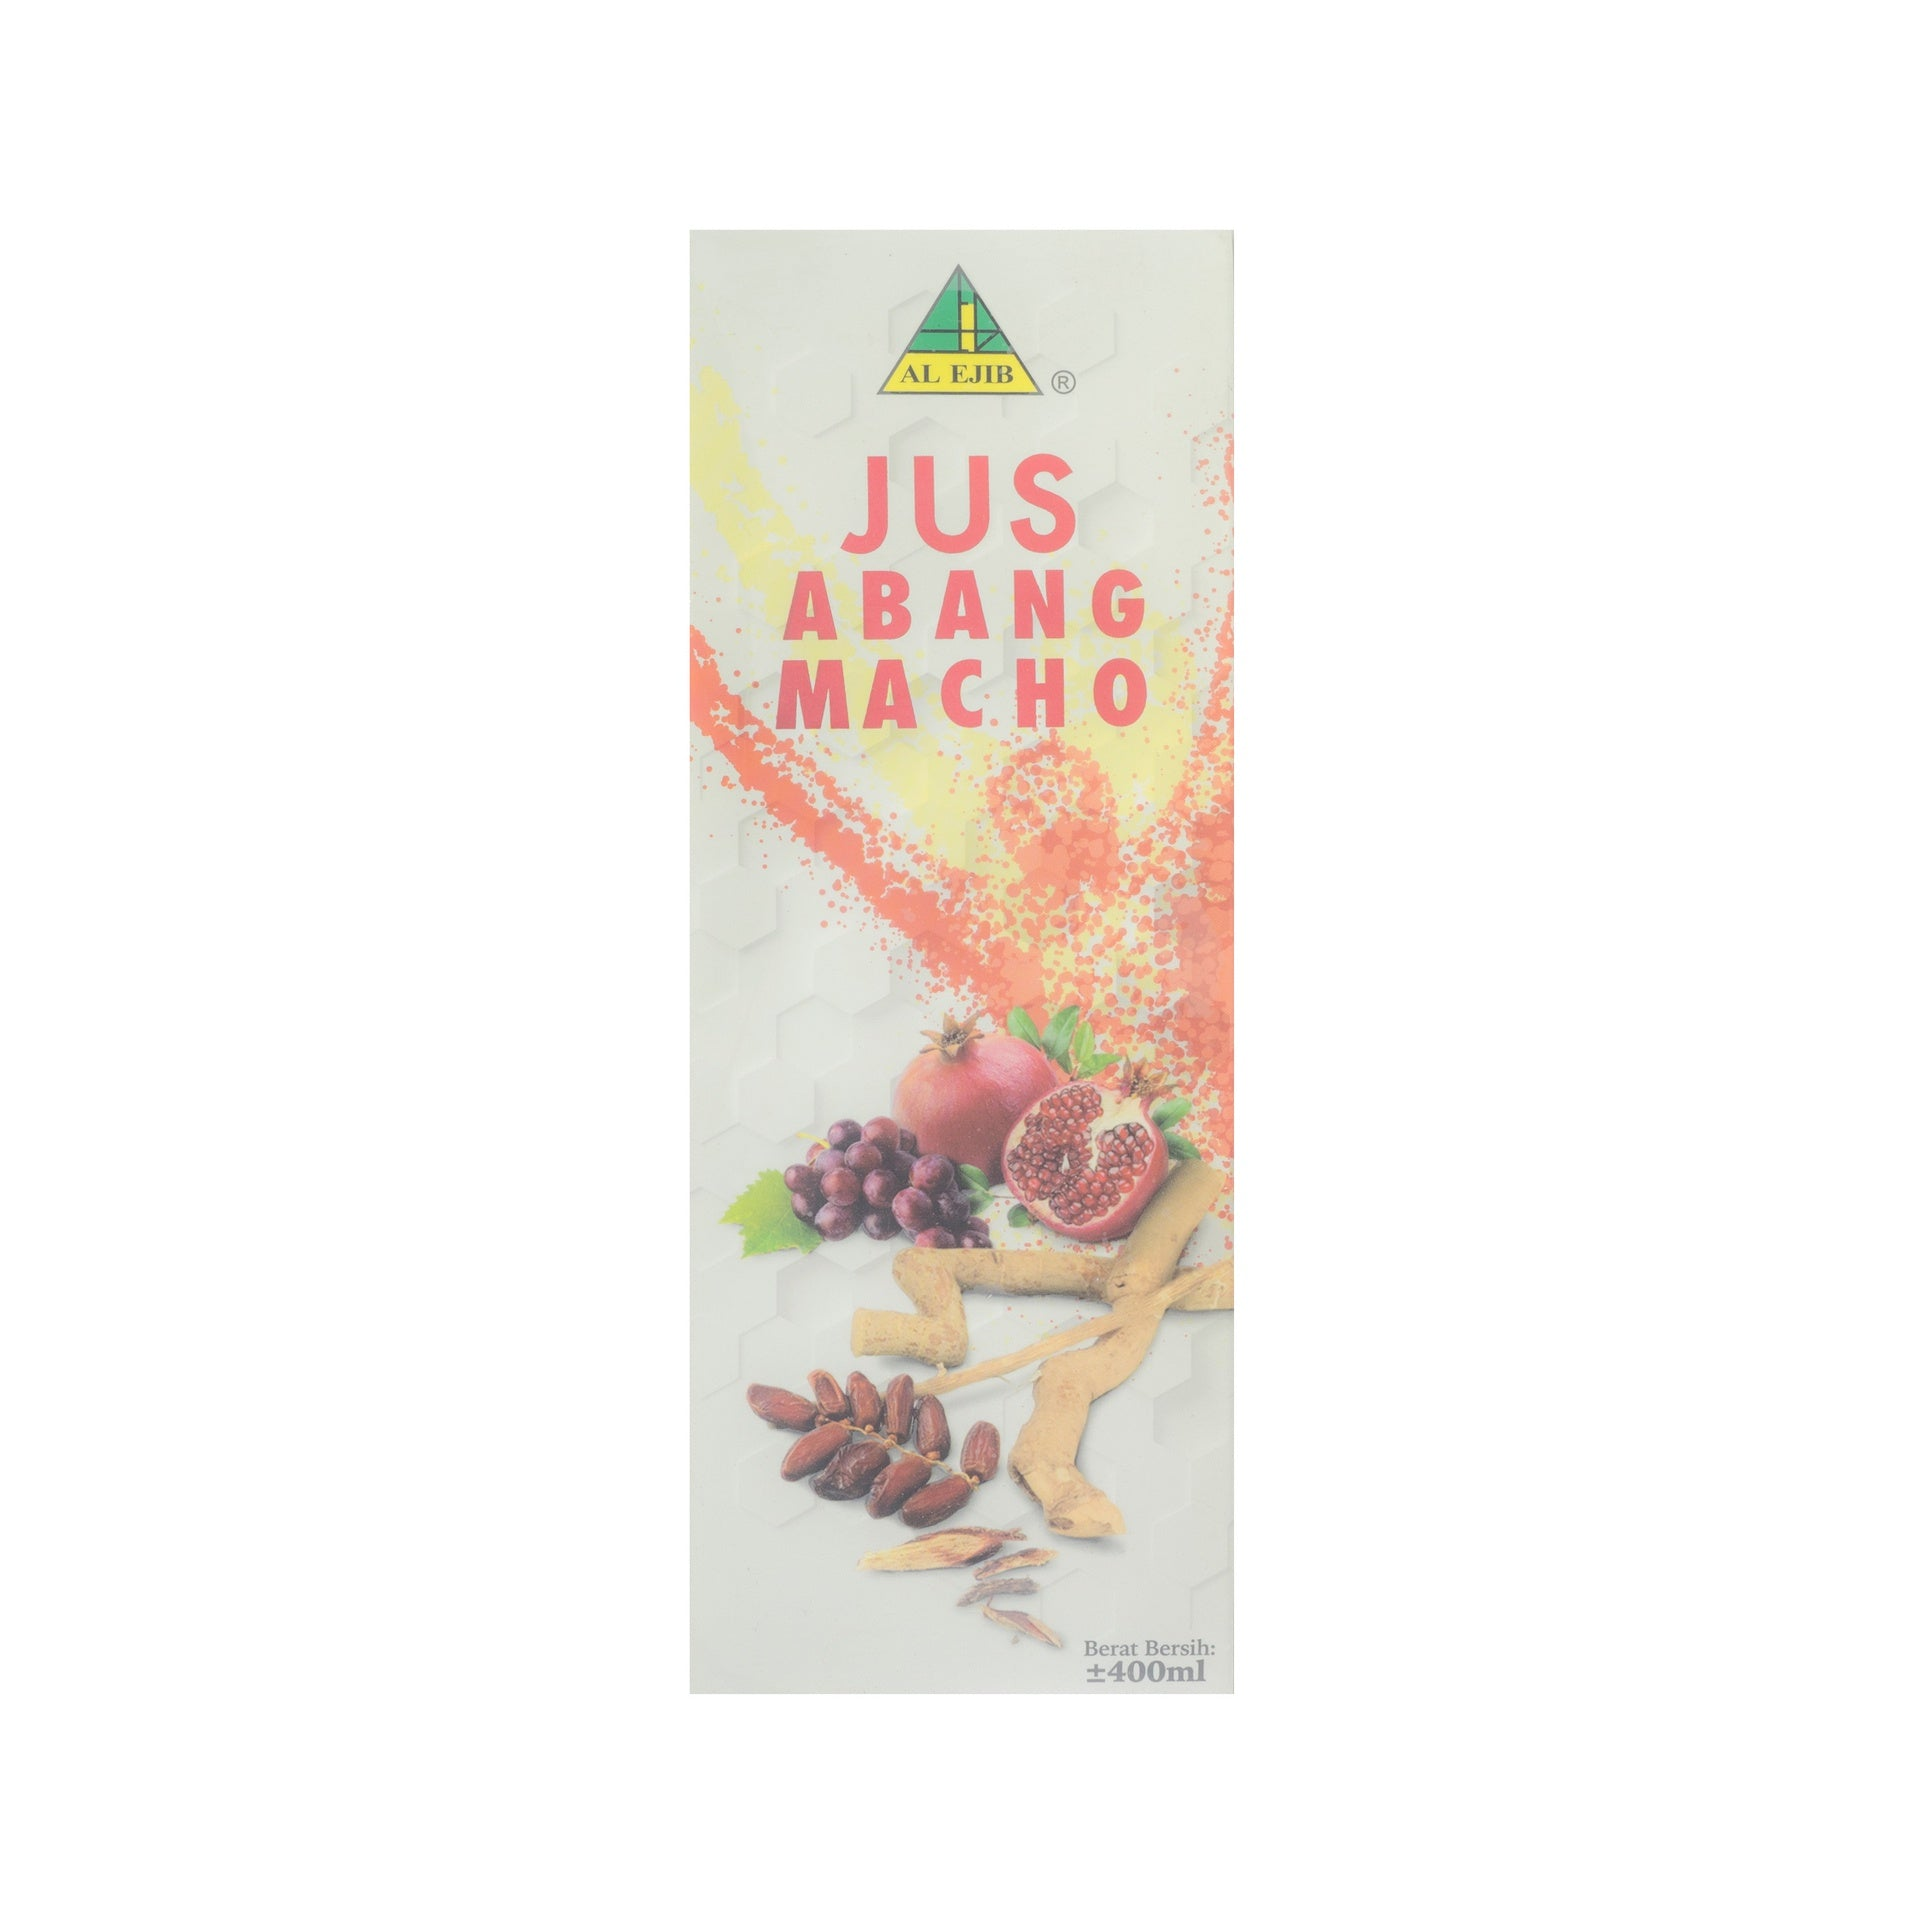 Al Ejib, Jus Abang Macho, 400 ml